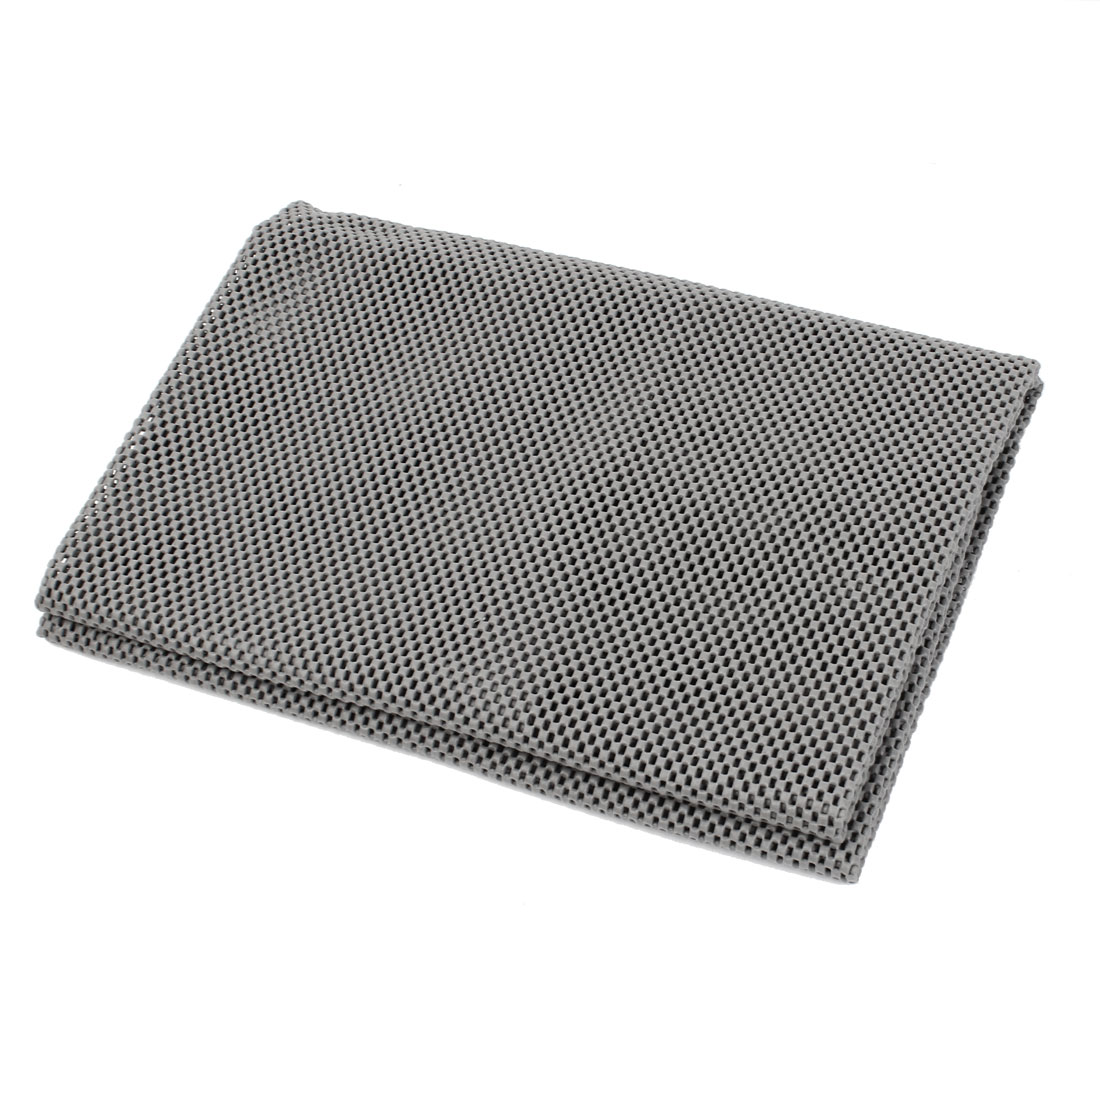 80cm x 100cm Gray Foam Embossed Grid Toolbox Case Non Slip Mat Pad Cusion for Car